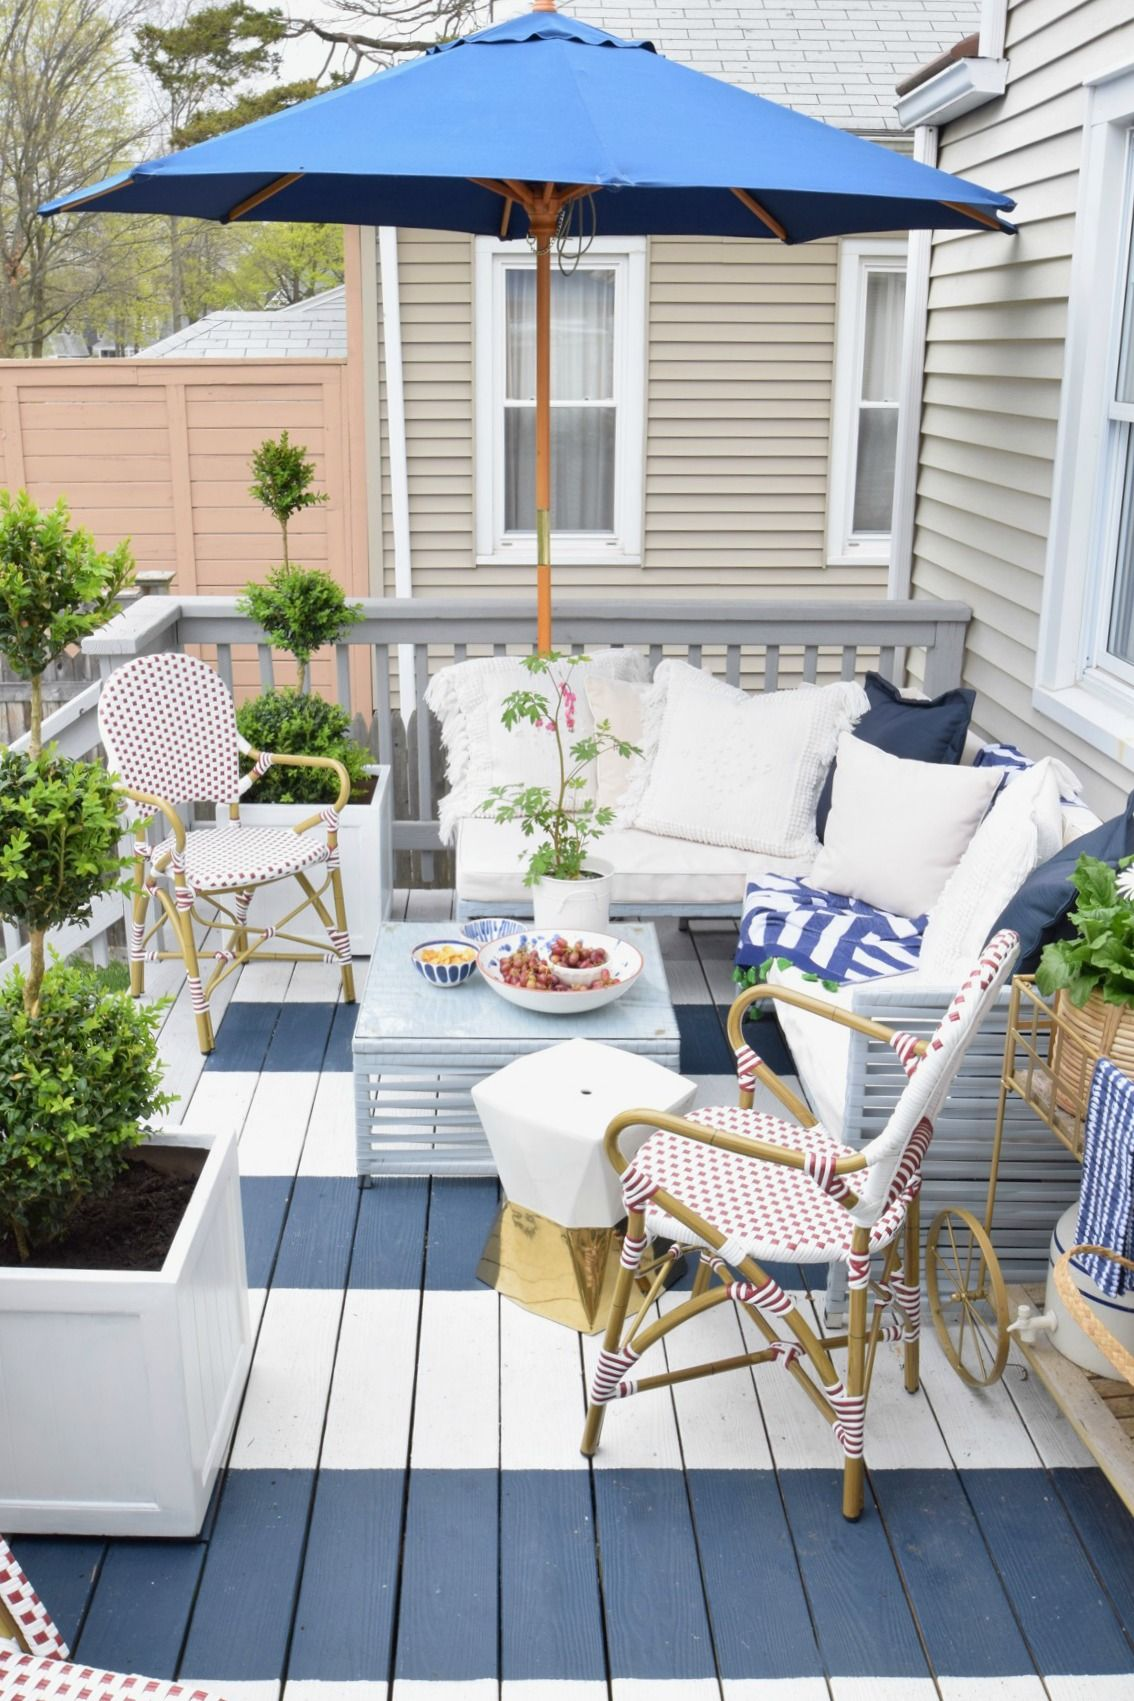 Outdoor Casual Dining on our Painted Deck   Decking, Backyard and Porch